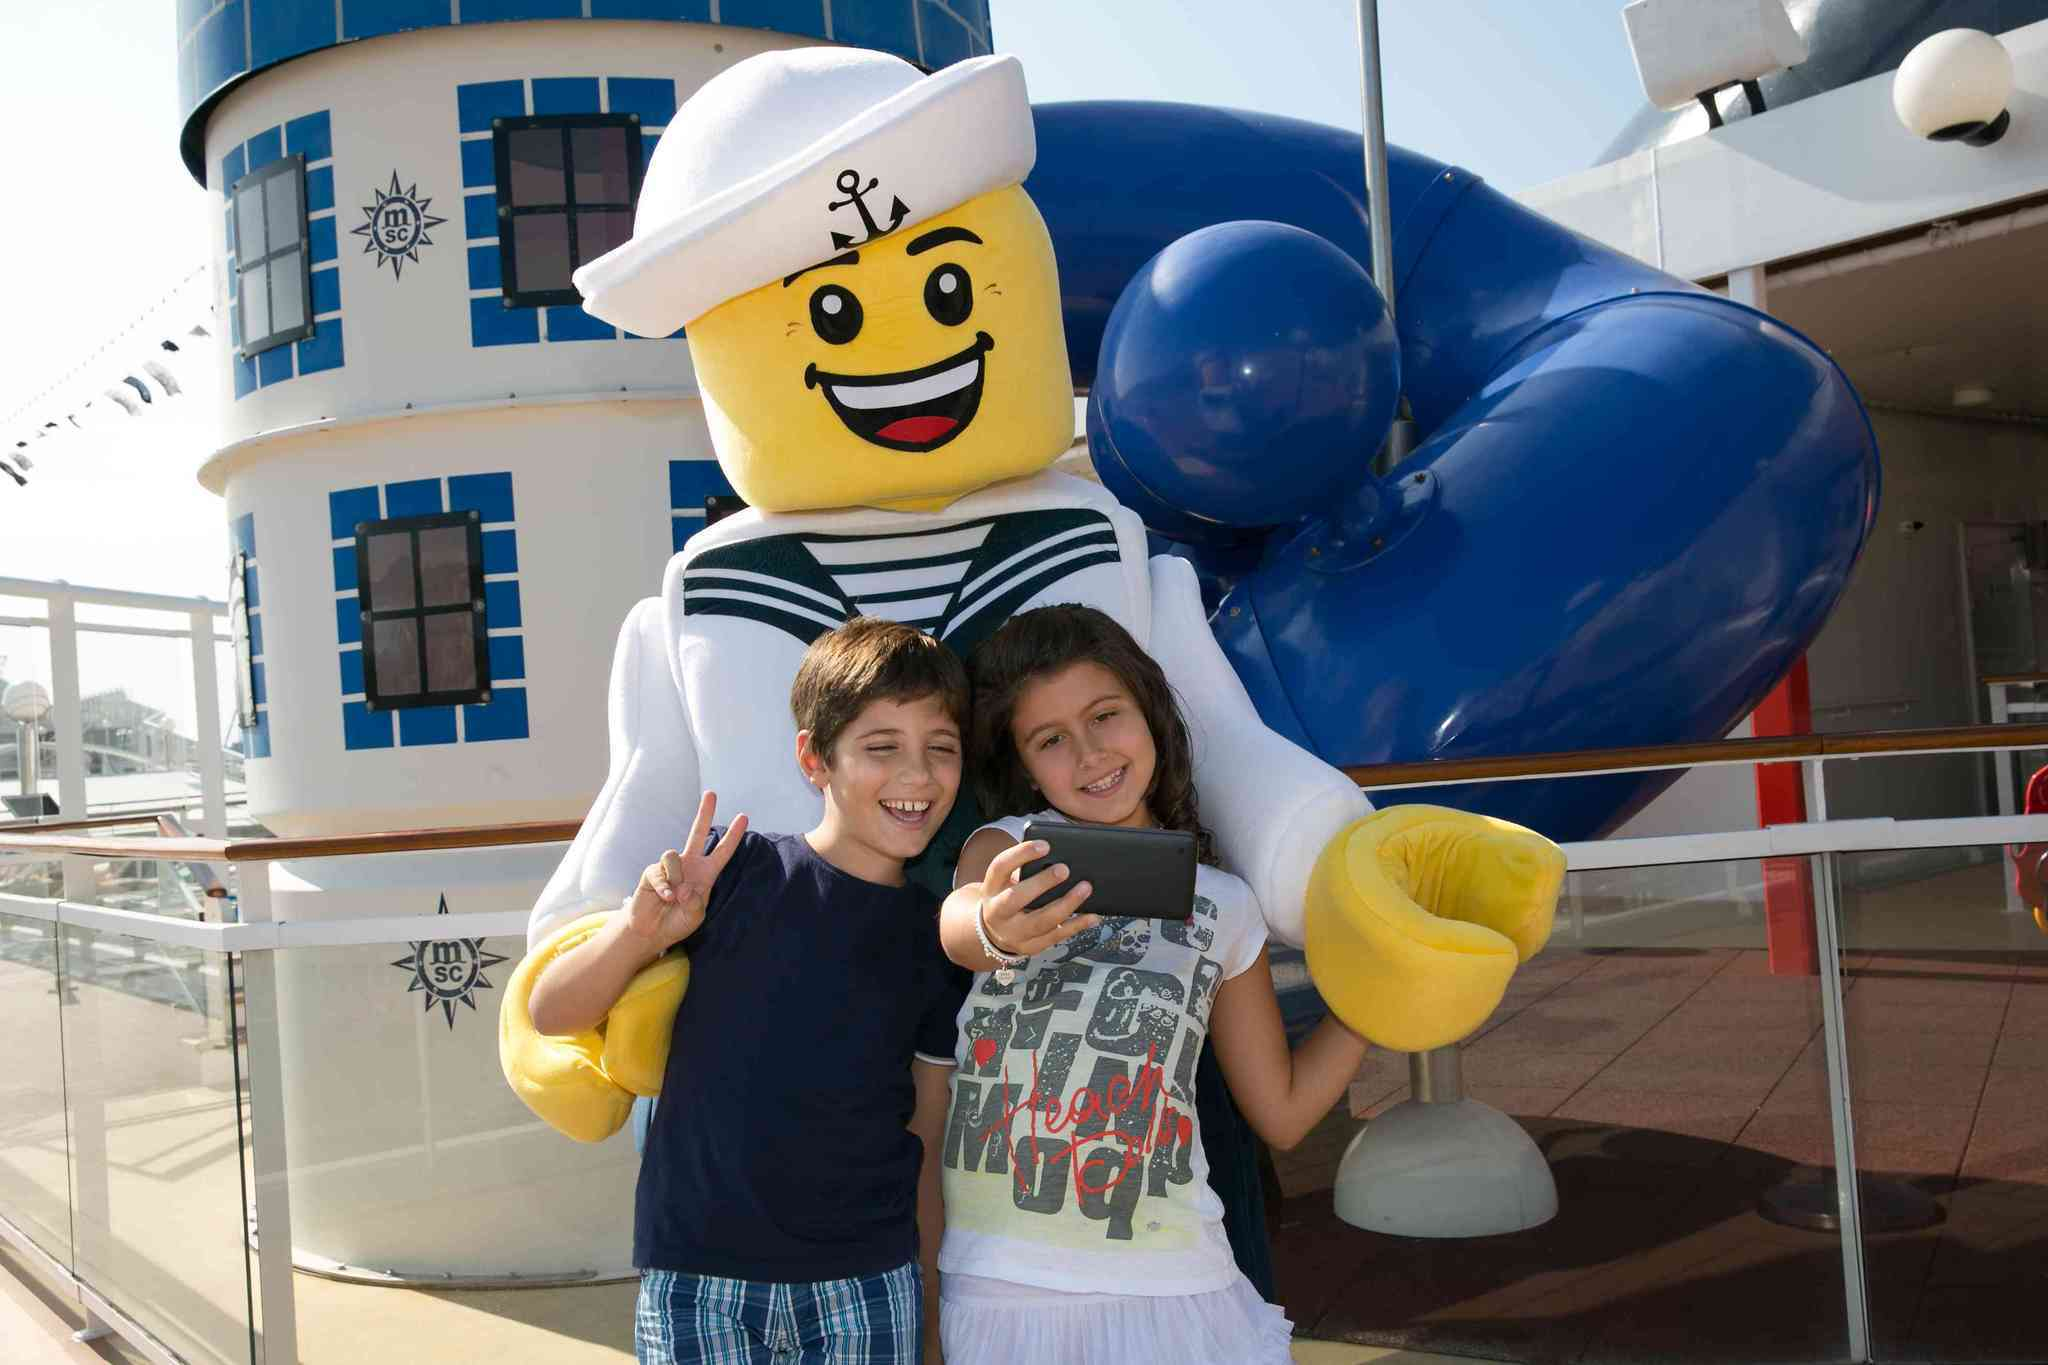 It's child's play with the Lego Experience MSC Cruises